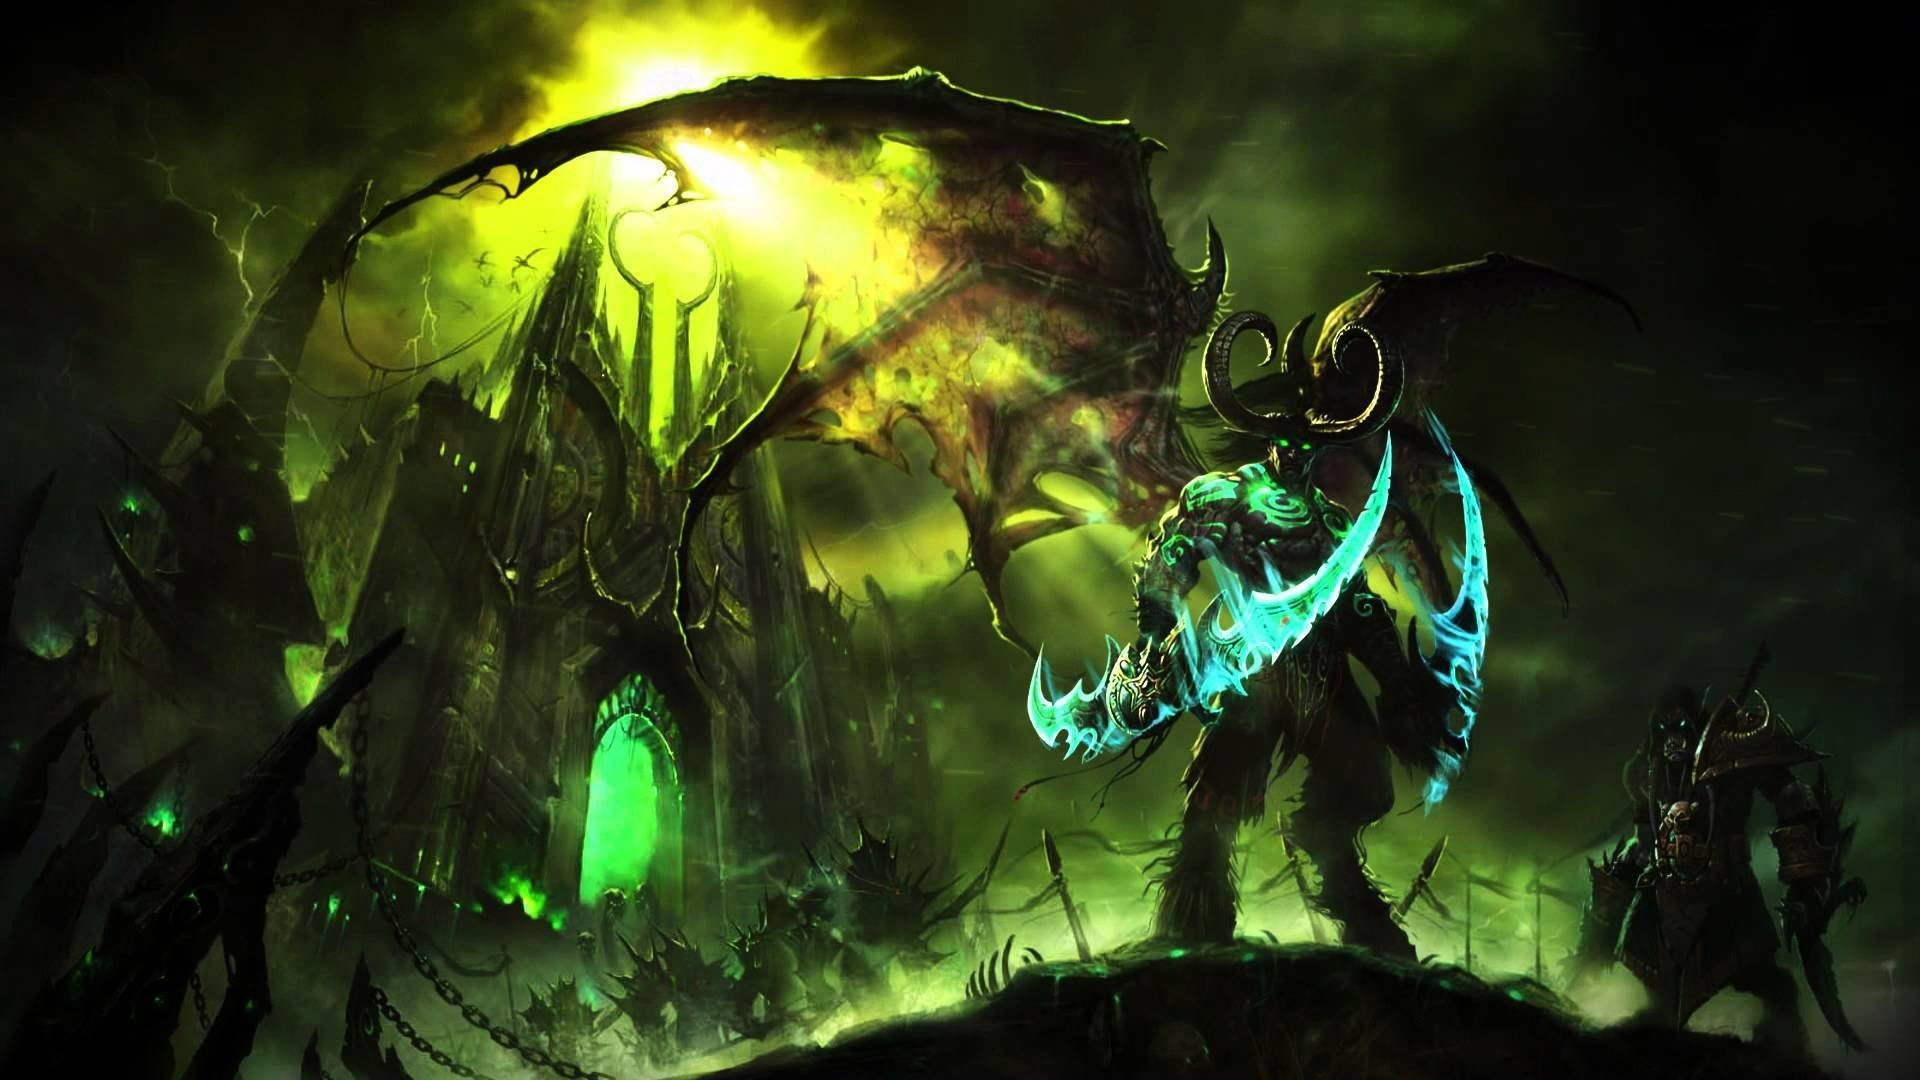 World Of Warcraft Wallpapers Wallpapers All Superior World Of Warcraft Wallpapers Backgrounds Wallpapersplanet Net